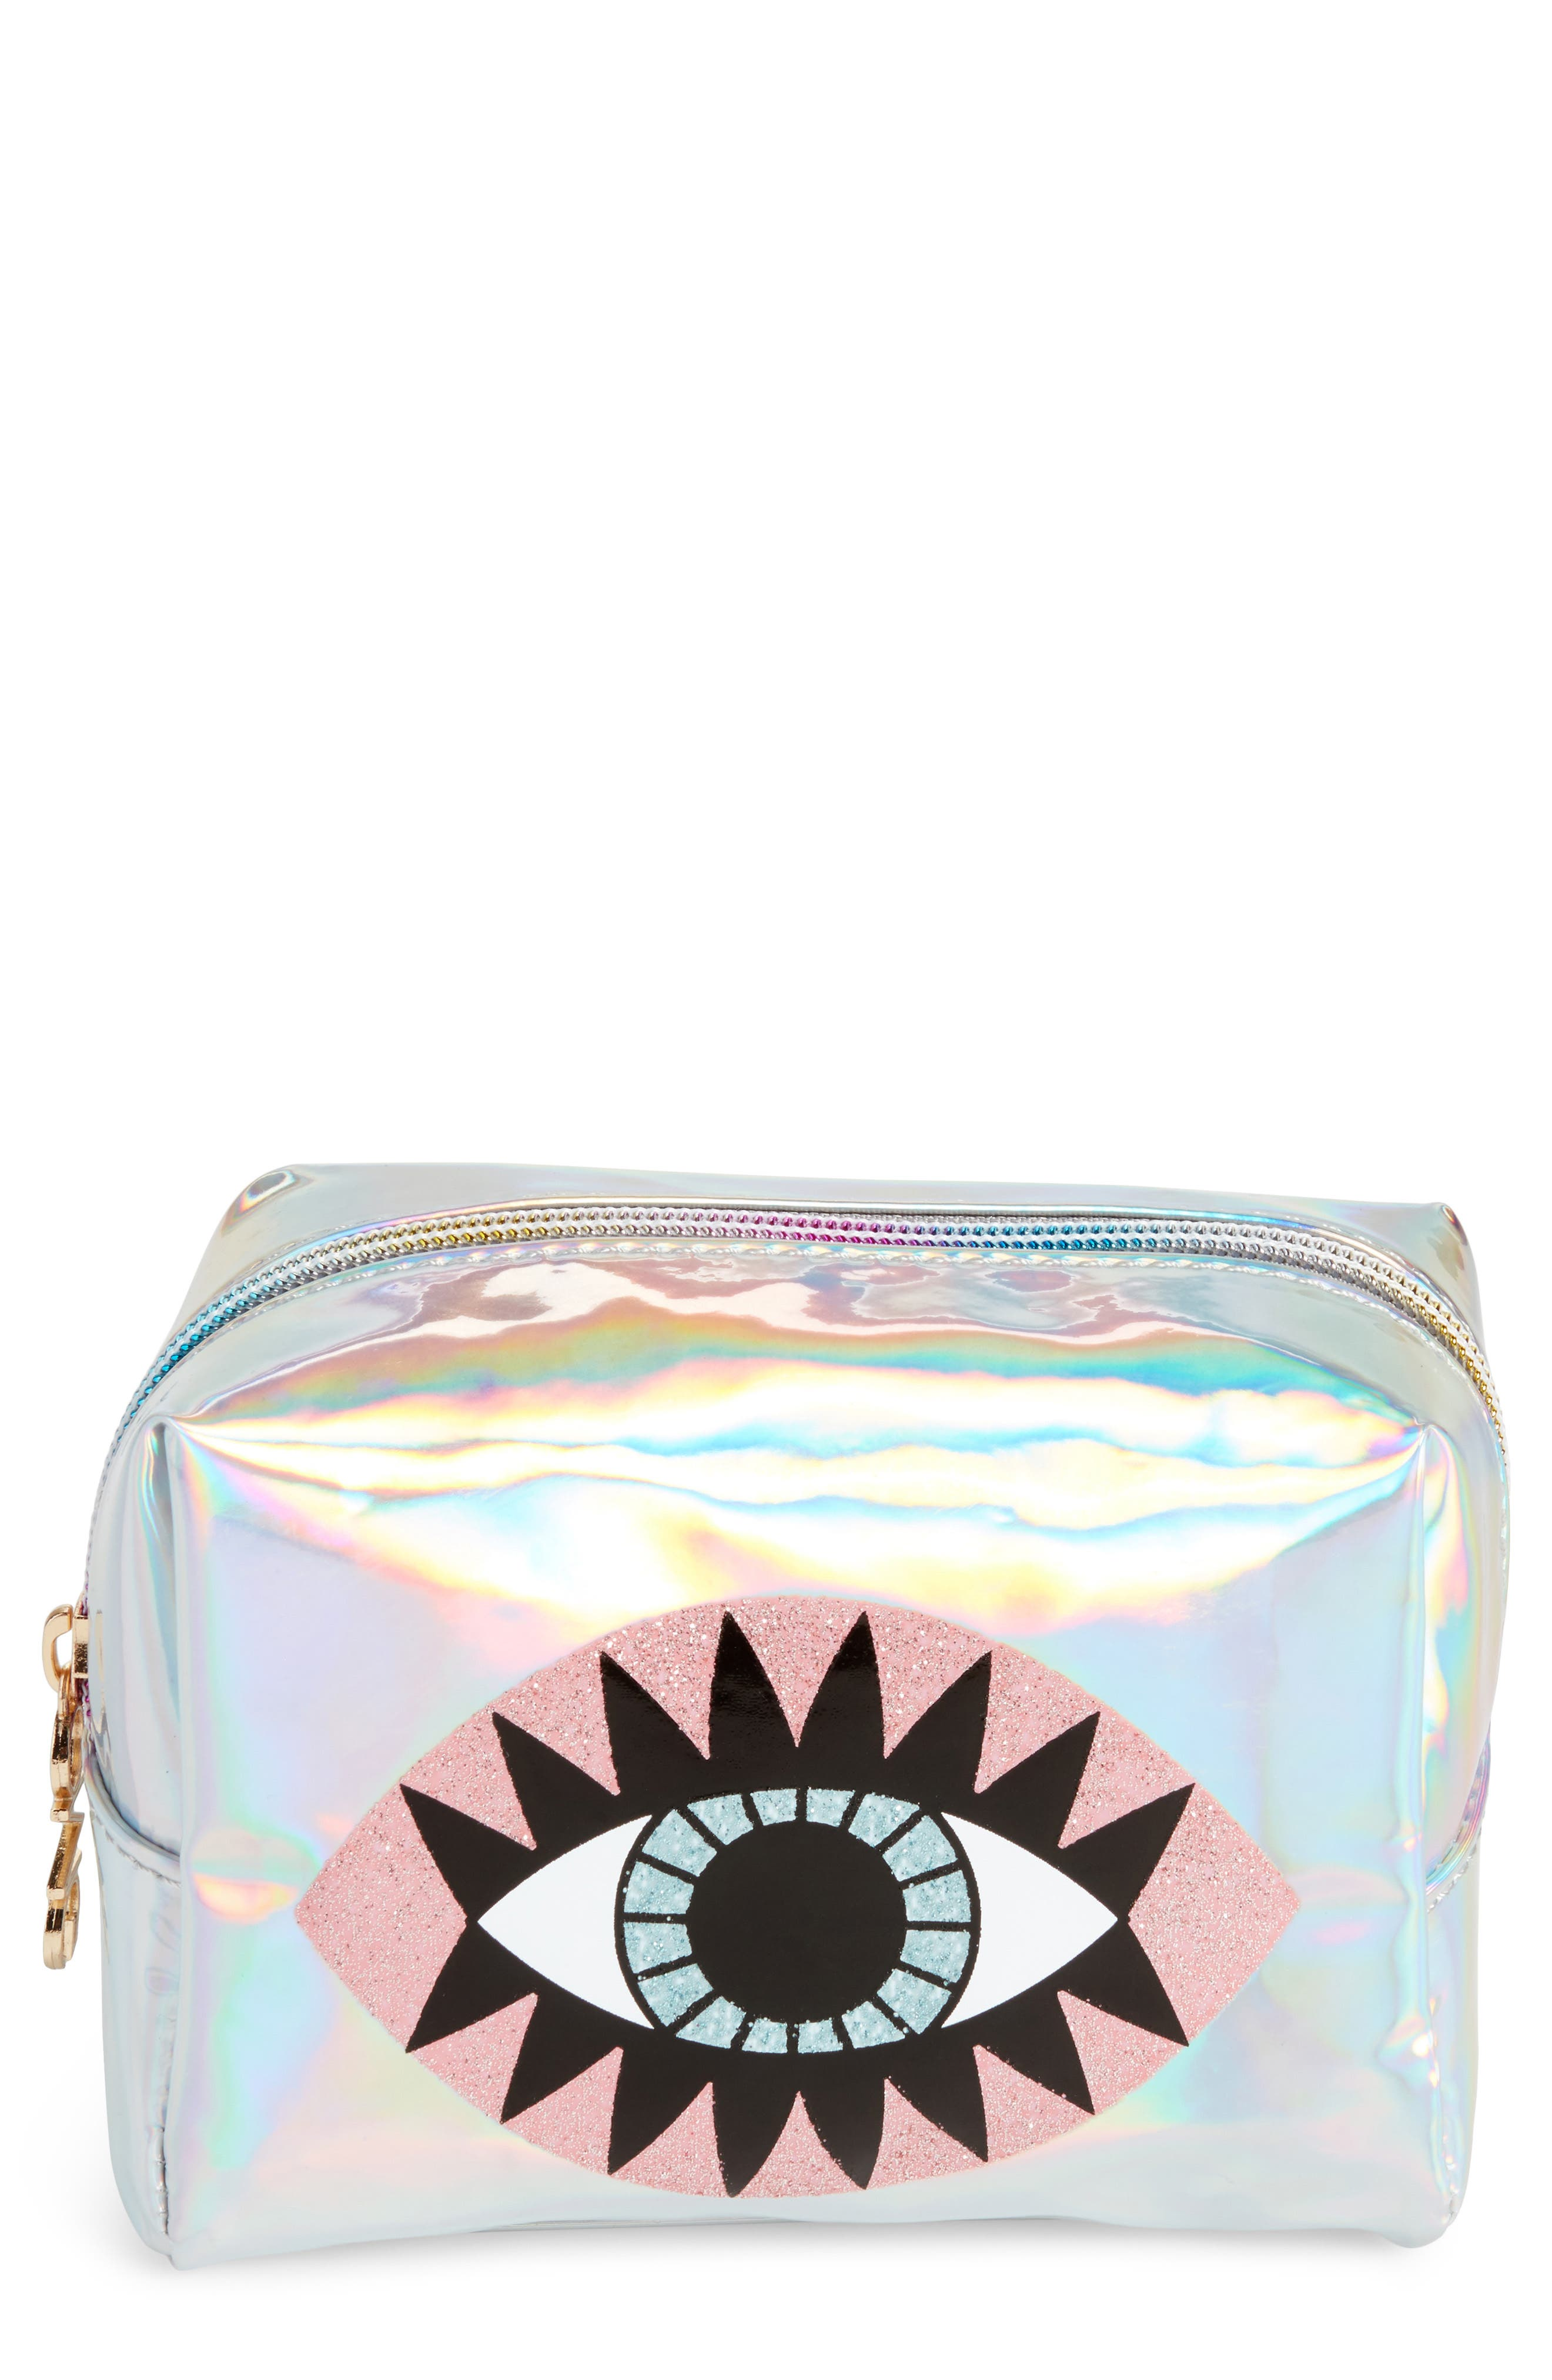 Glitter Eye Iridescent Cosmetics Bag,                         Main,                         color, Silver